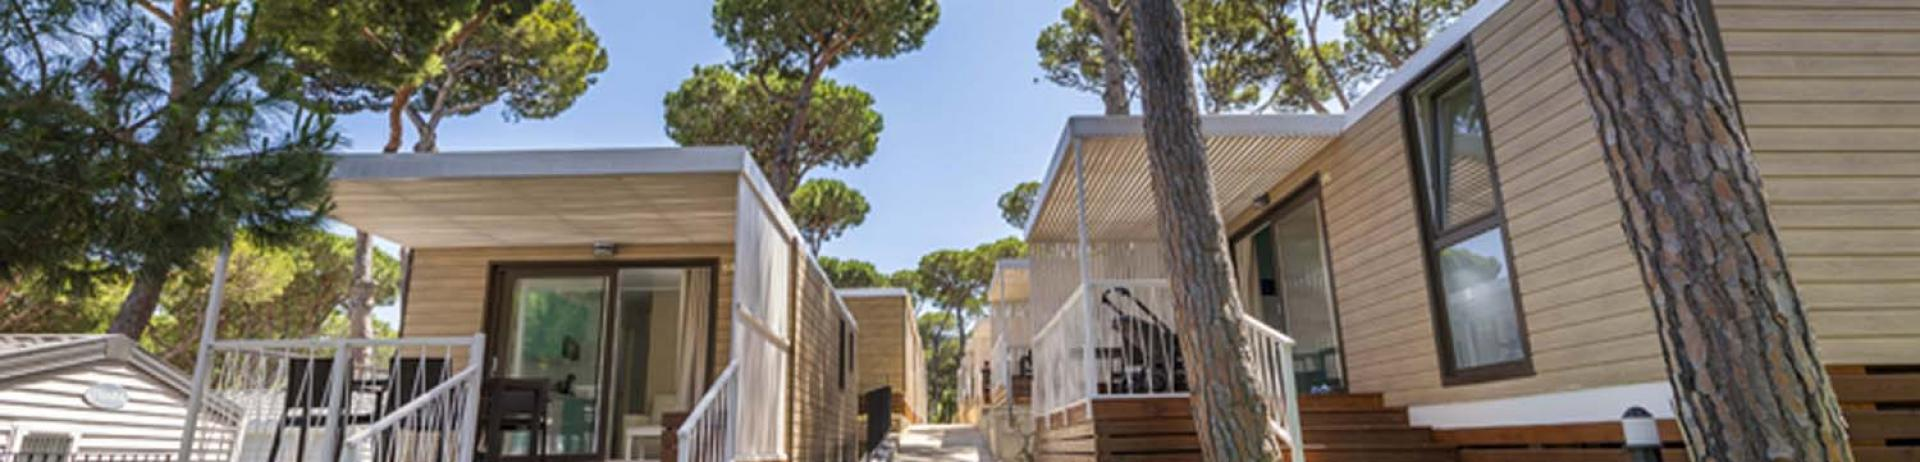 Camping with bungalows on the Costa Brava